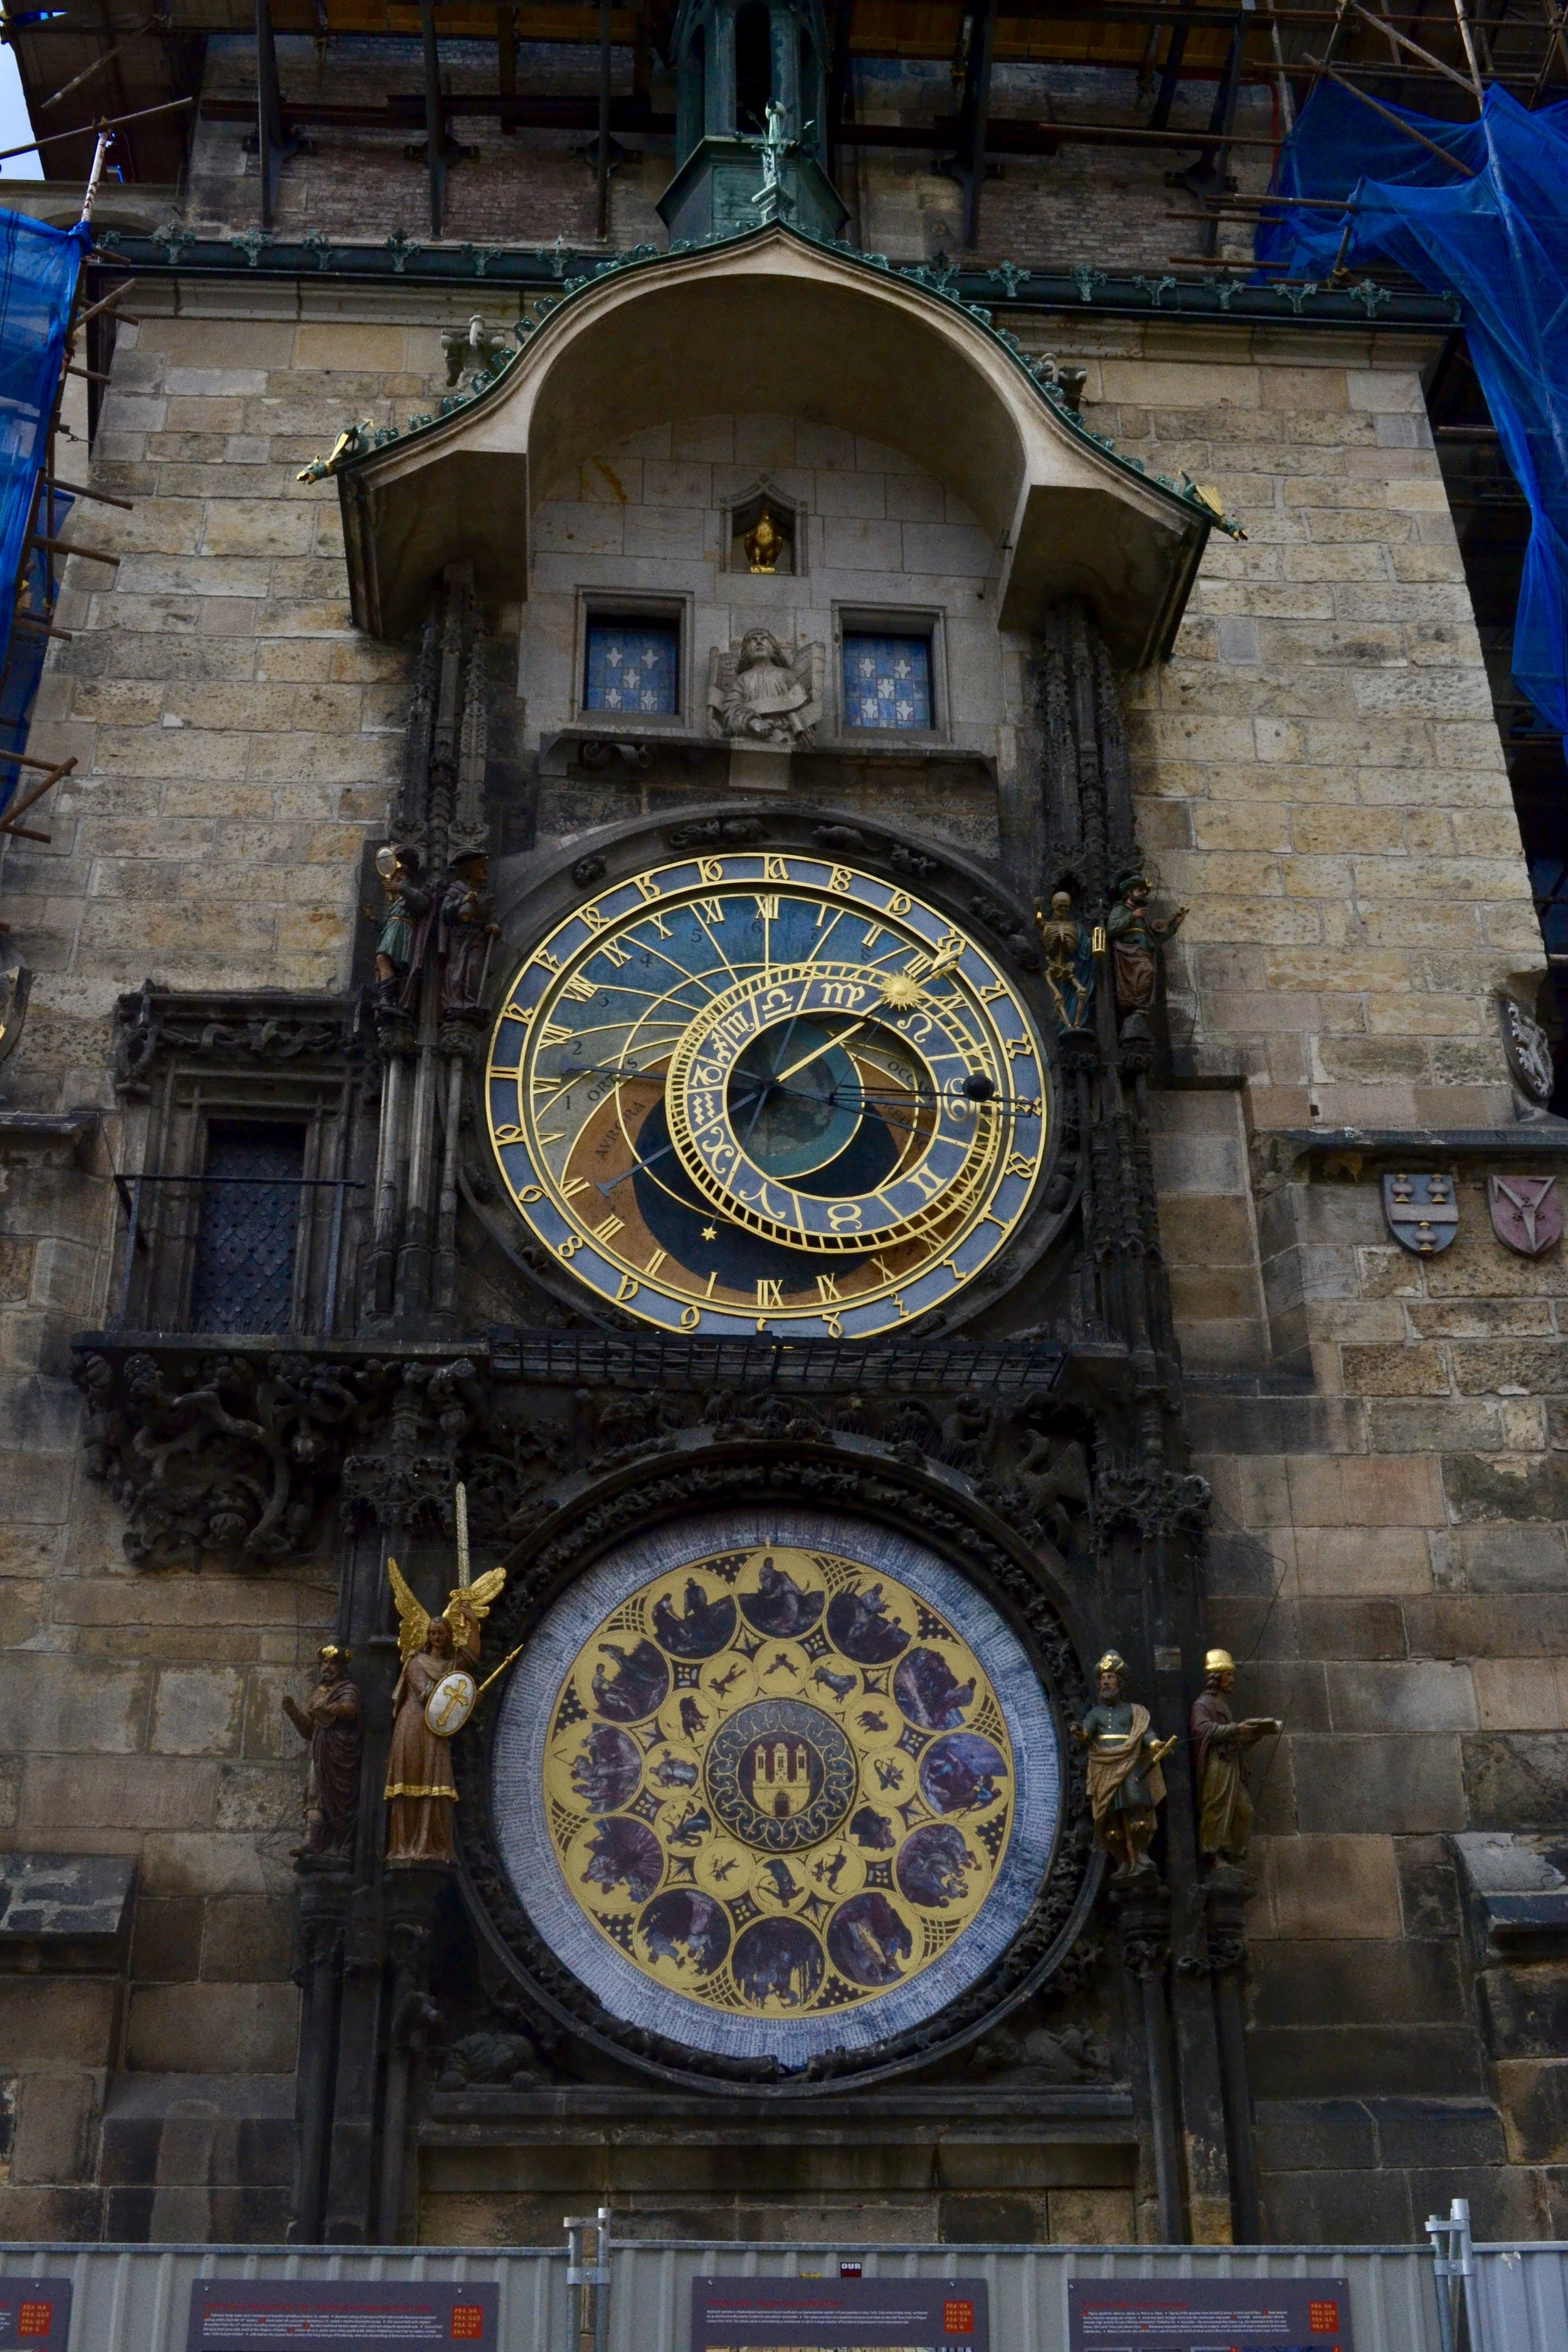 Astrological Clock - Old Town Square